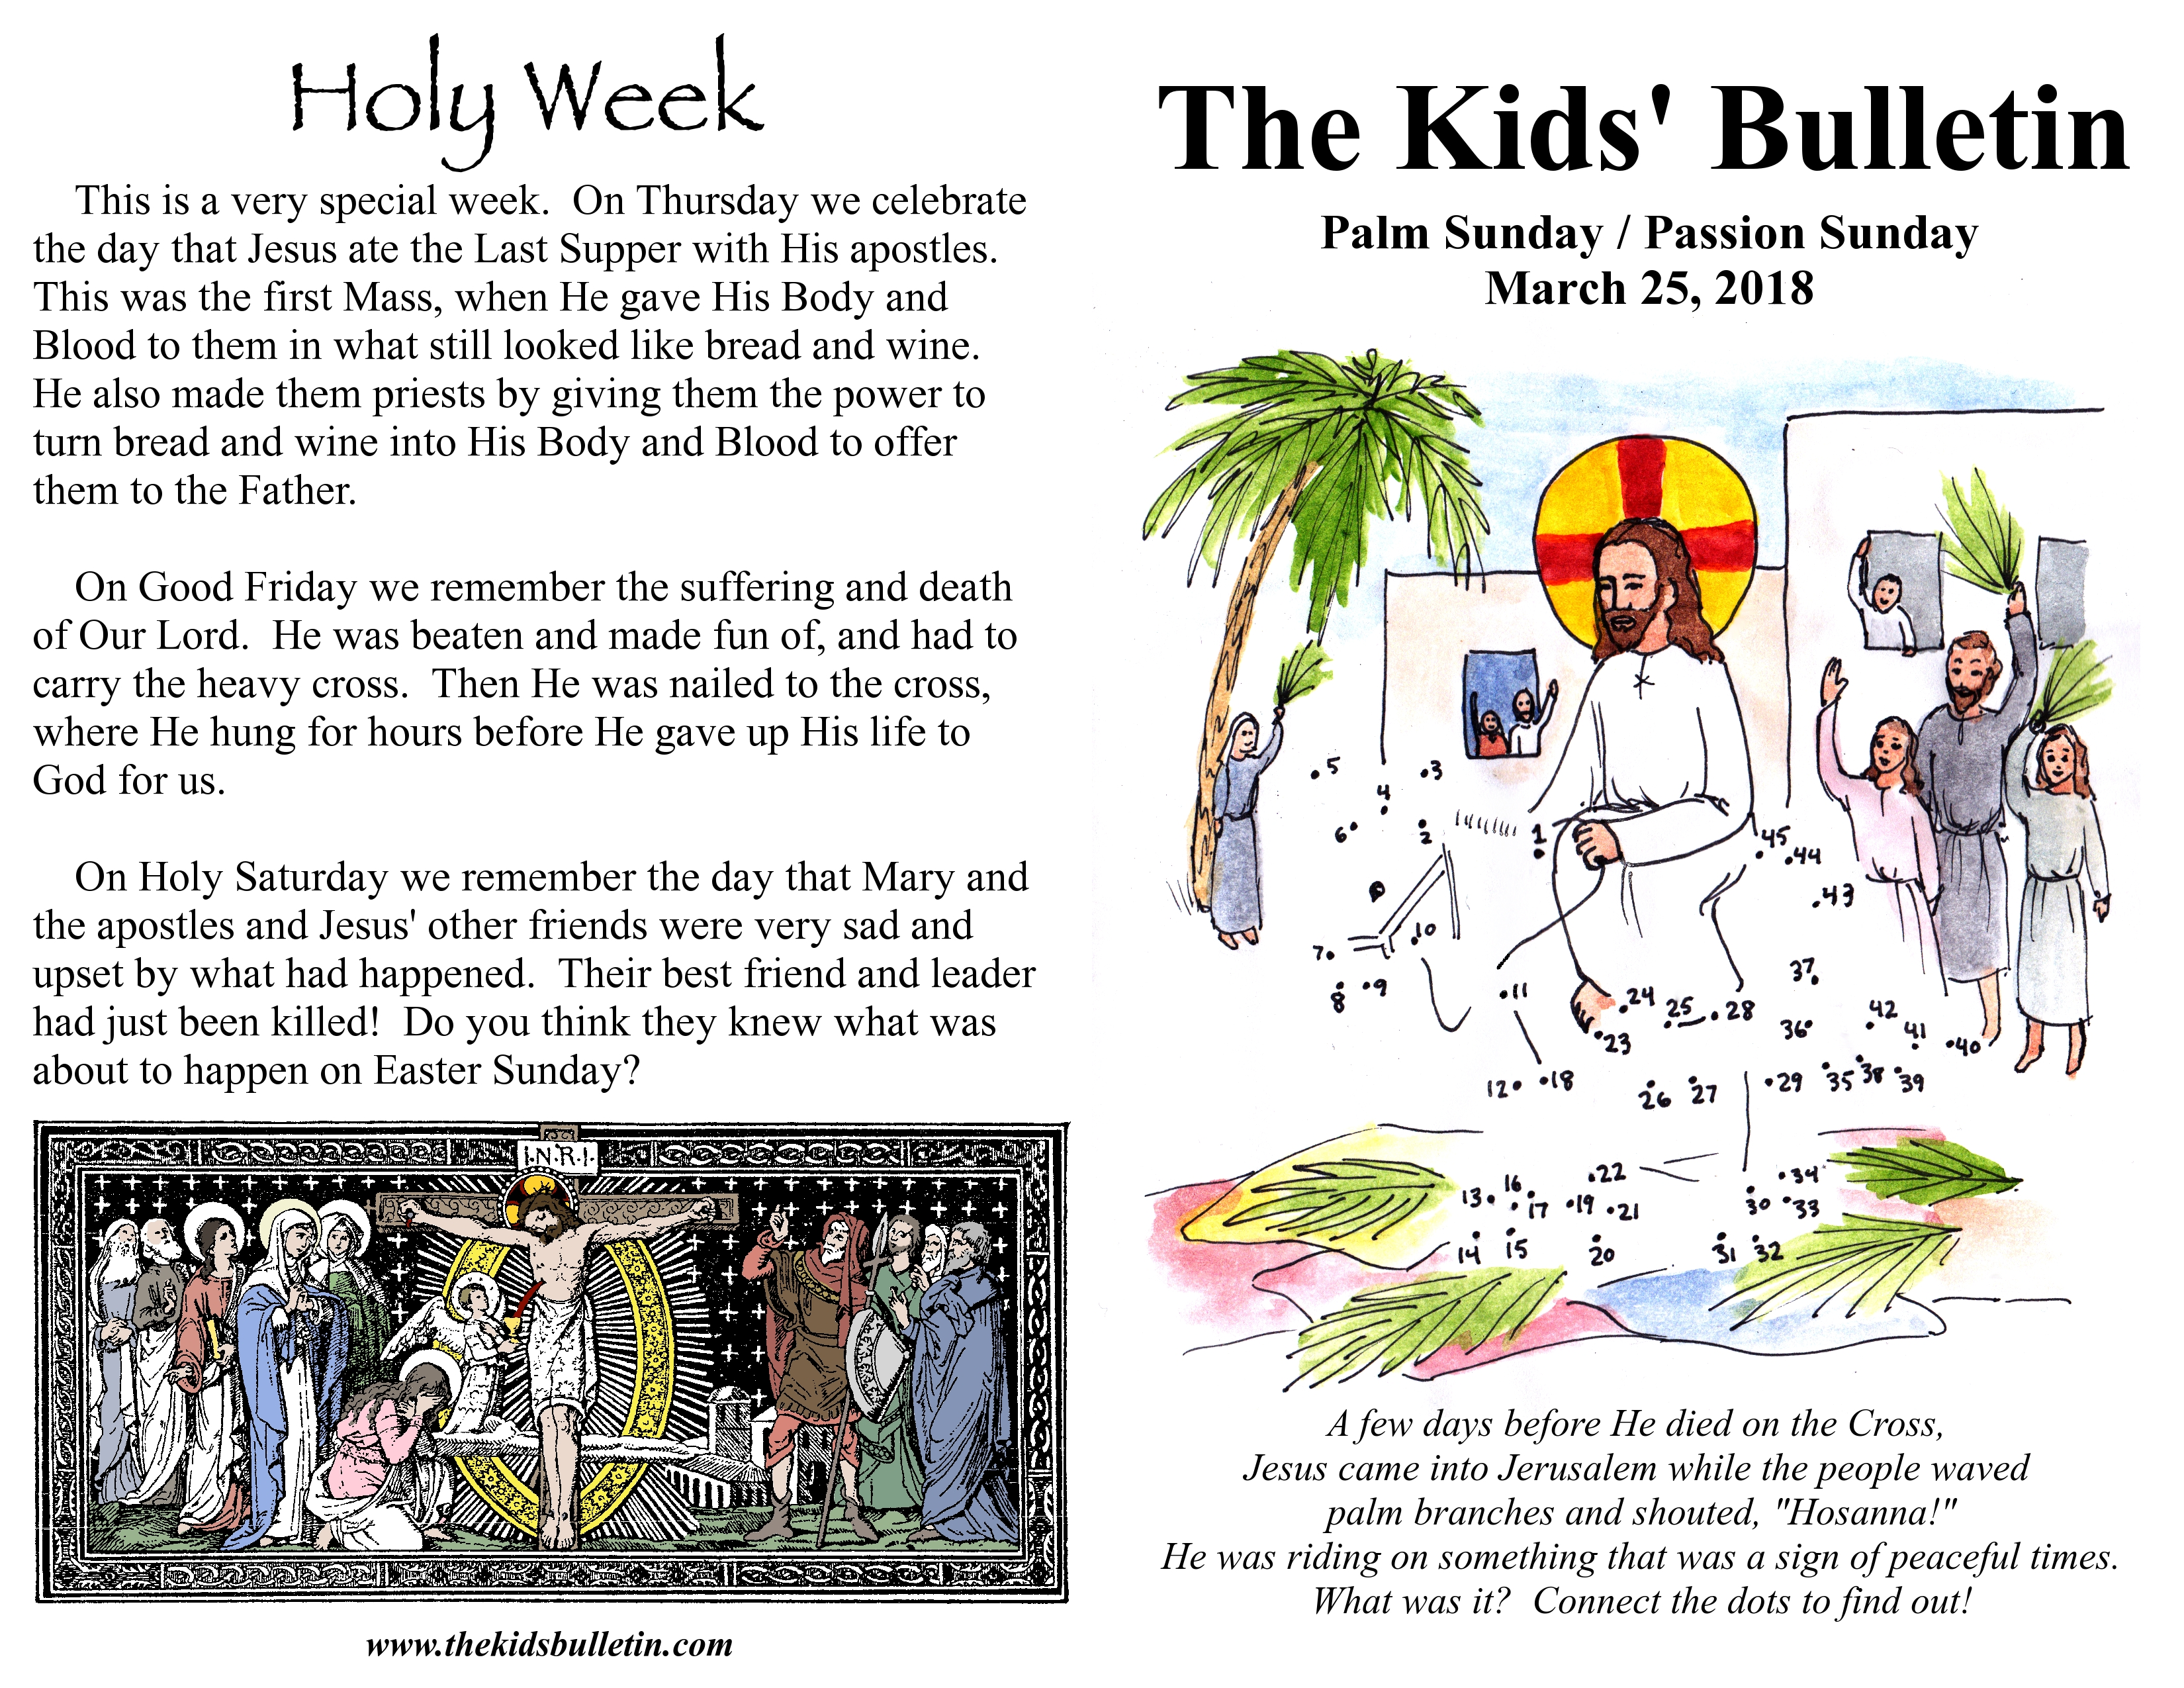 Sunday clipart palmpassion. The kids bulletin for